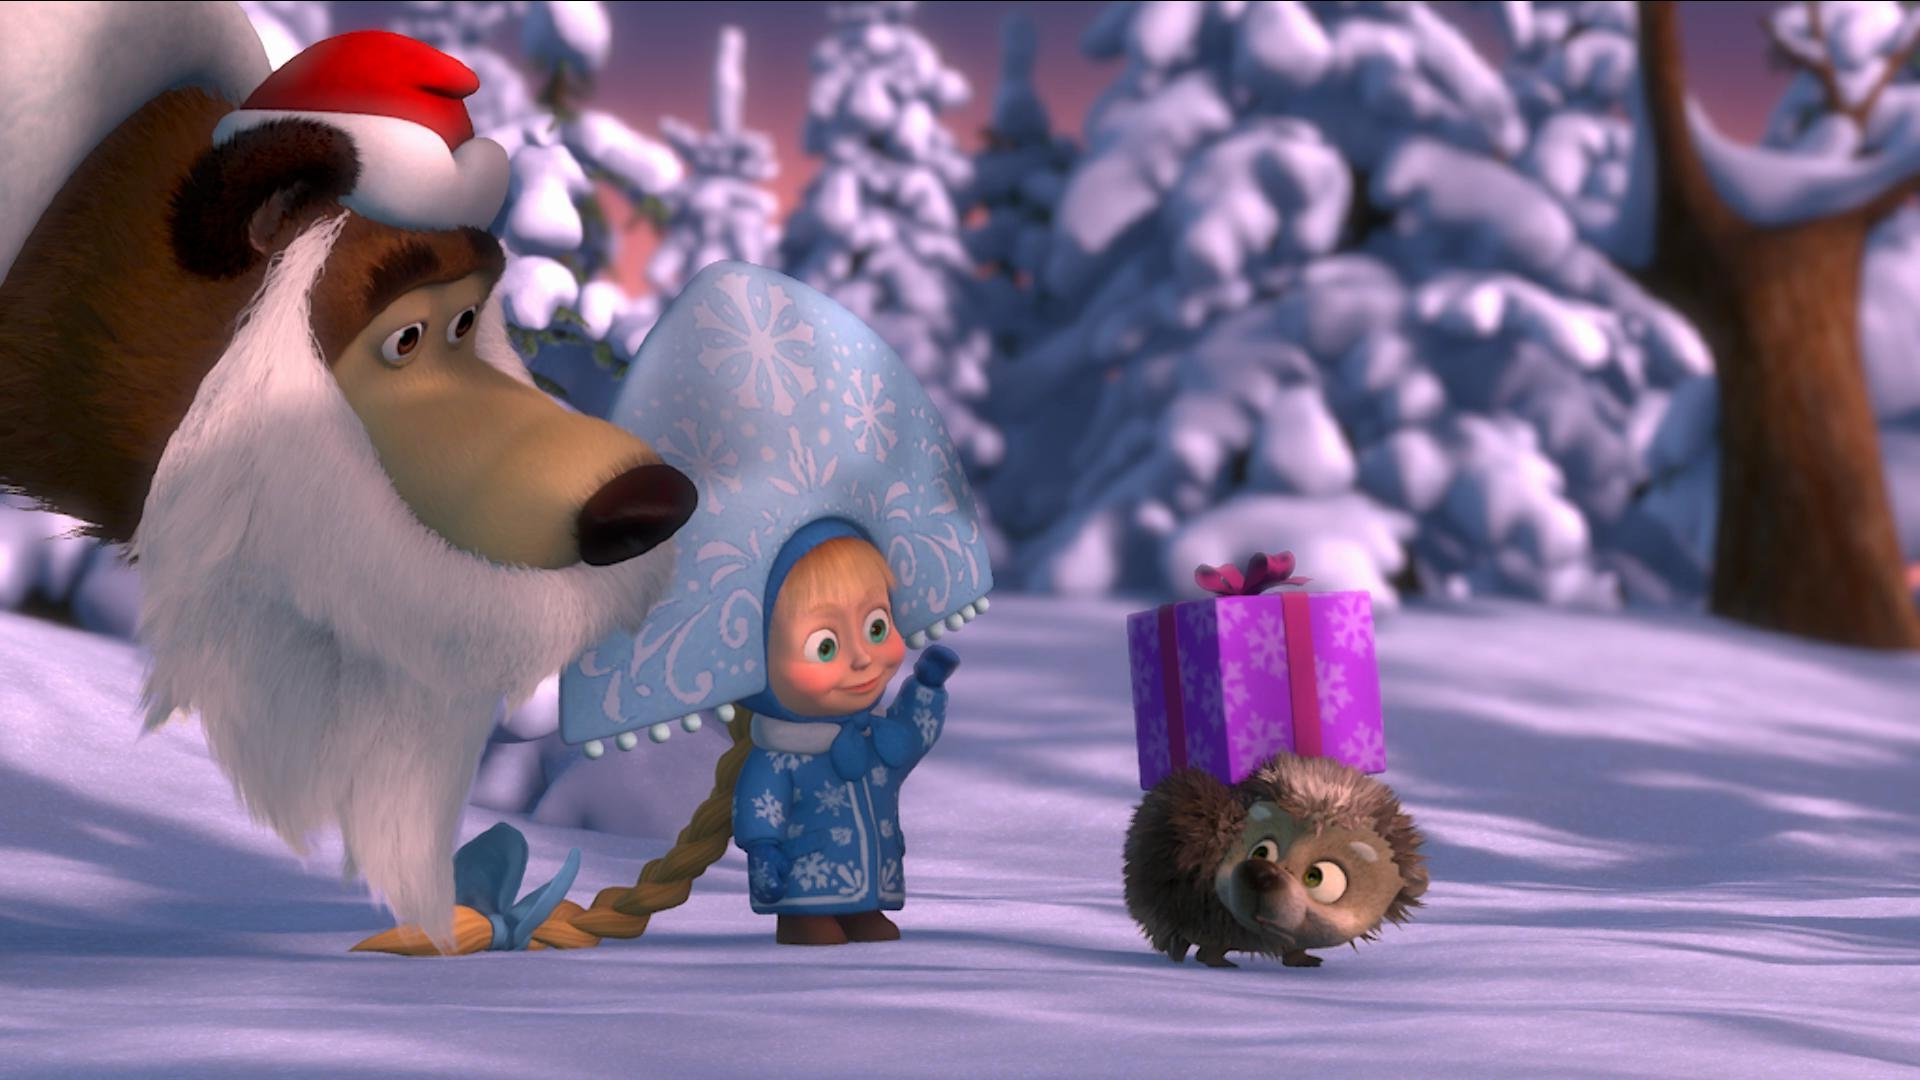 Masha And The Bear Winter  1920 x 1080  Download  Close